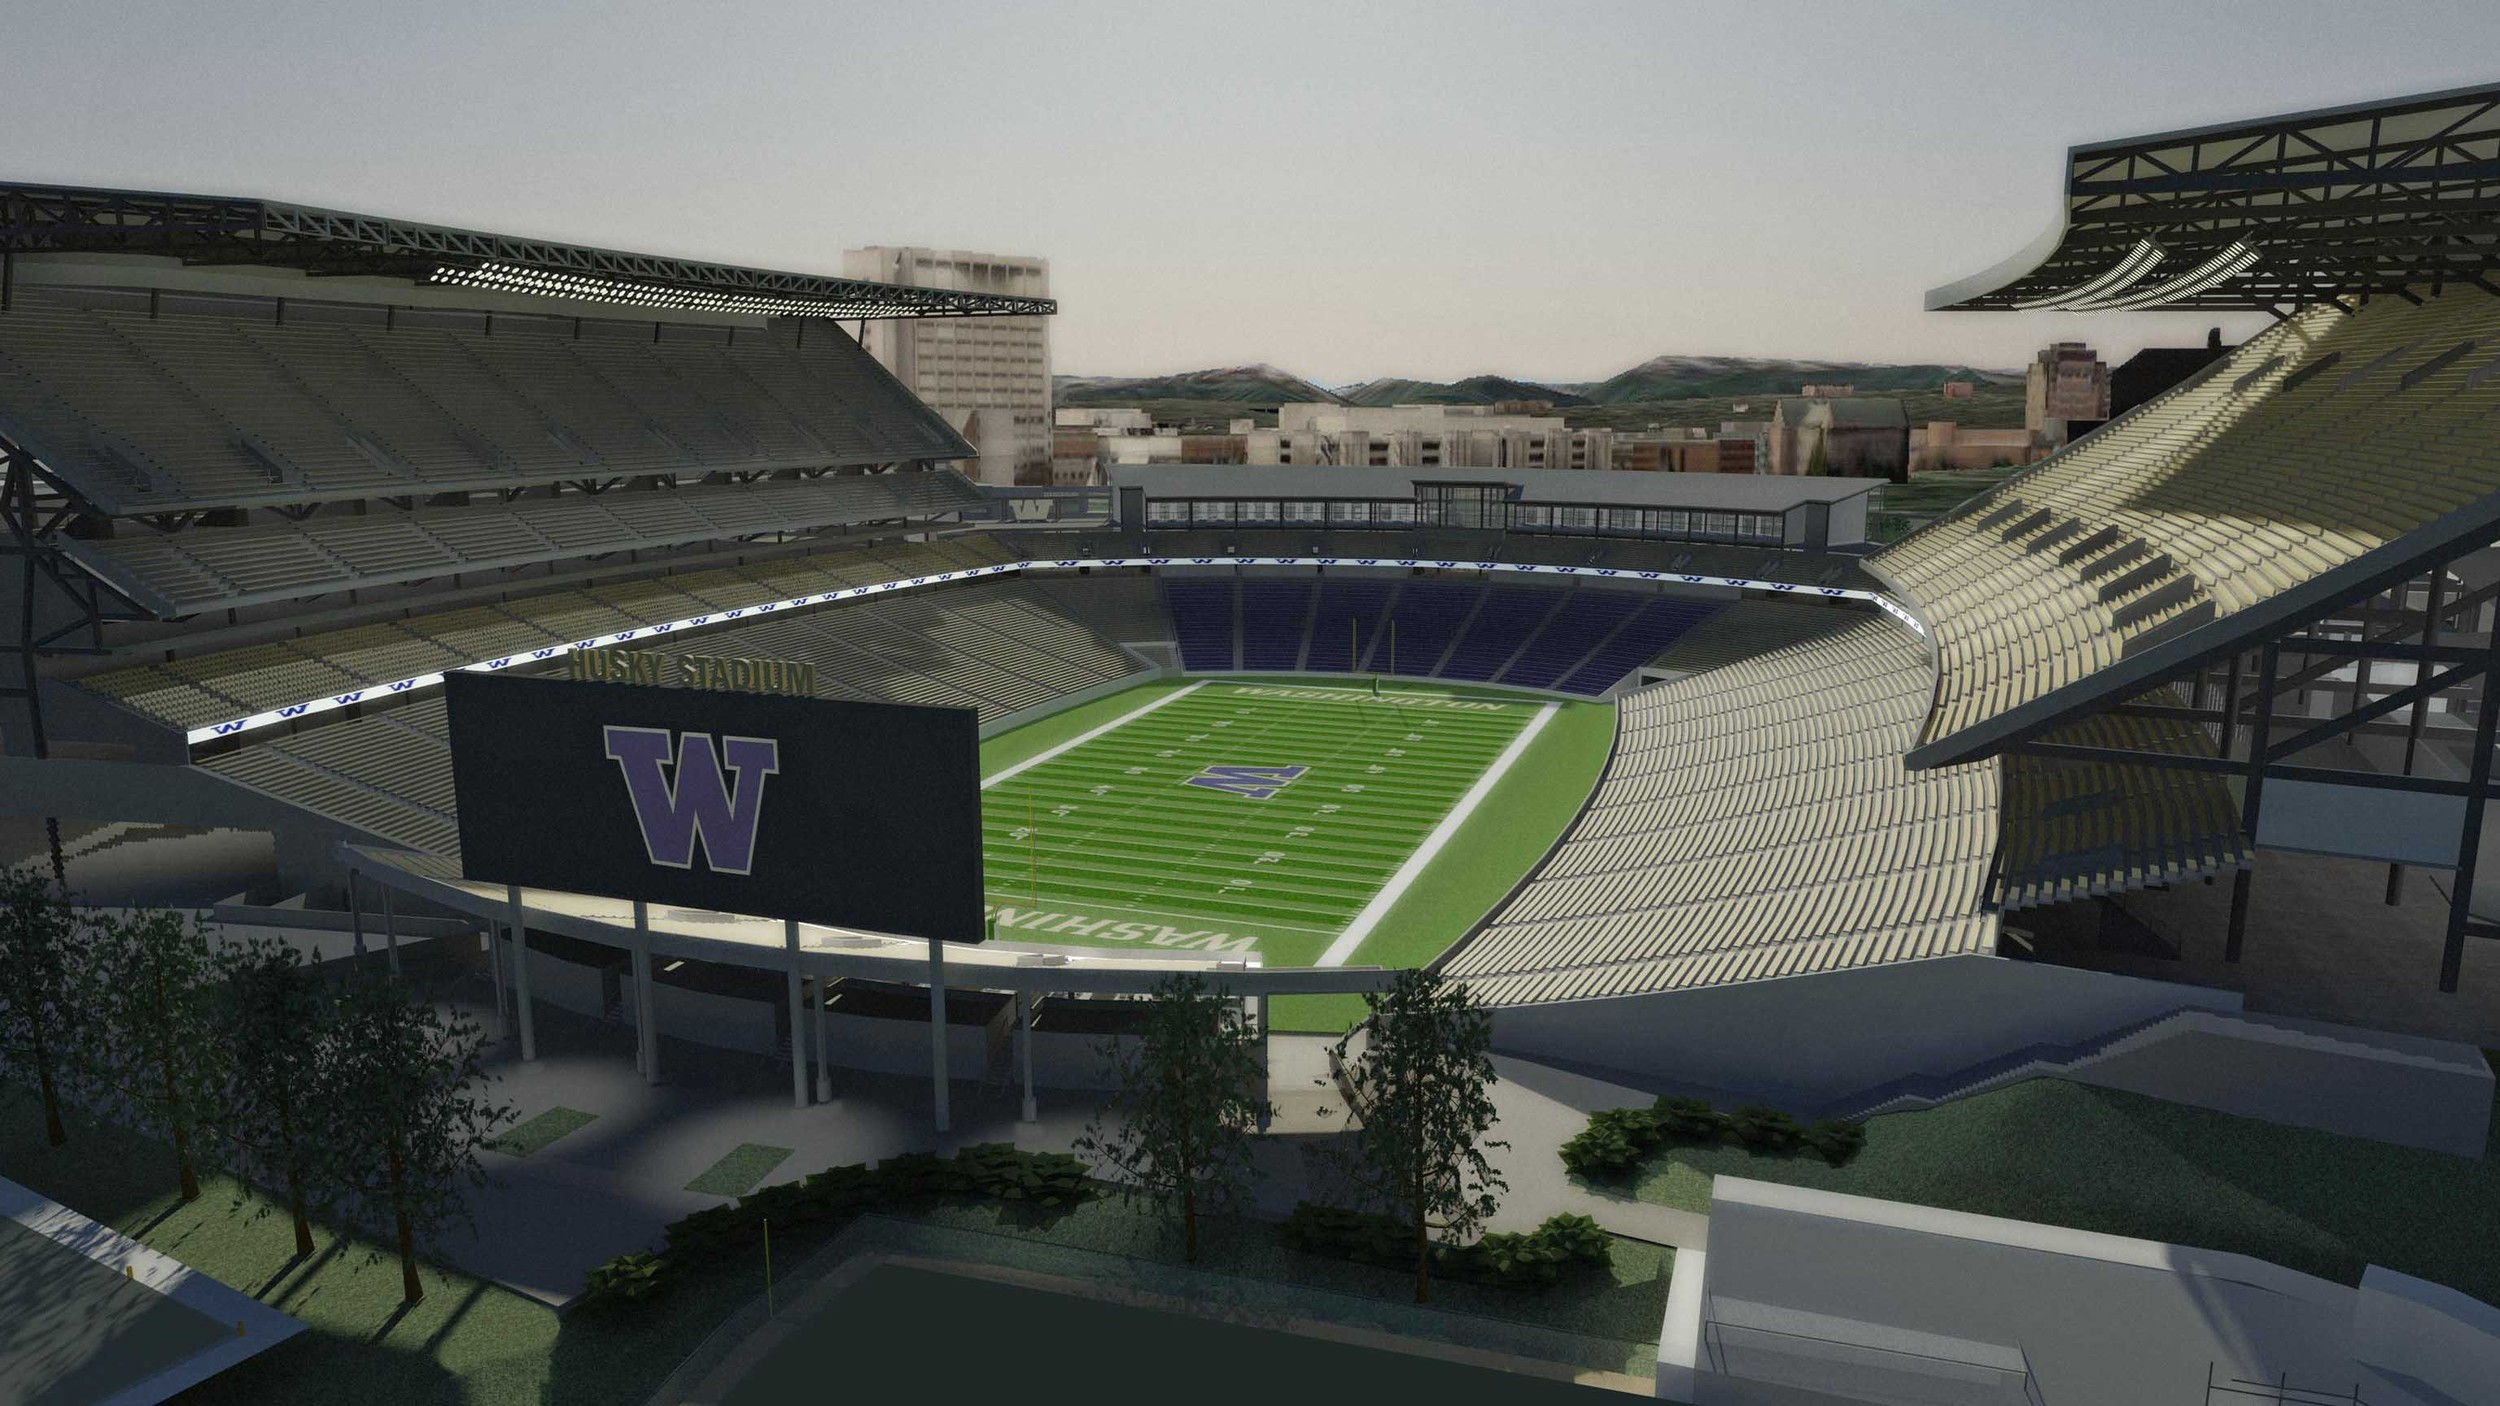 uwstadium_colorrender2_project_gallery.jpg